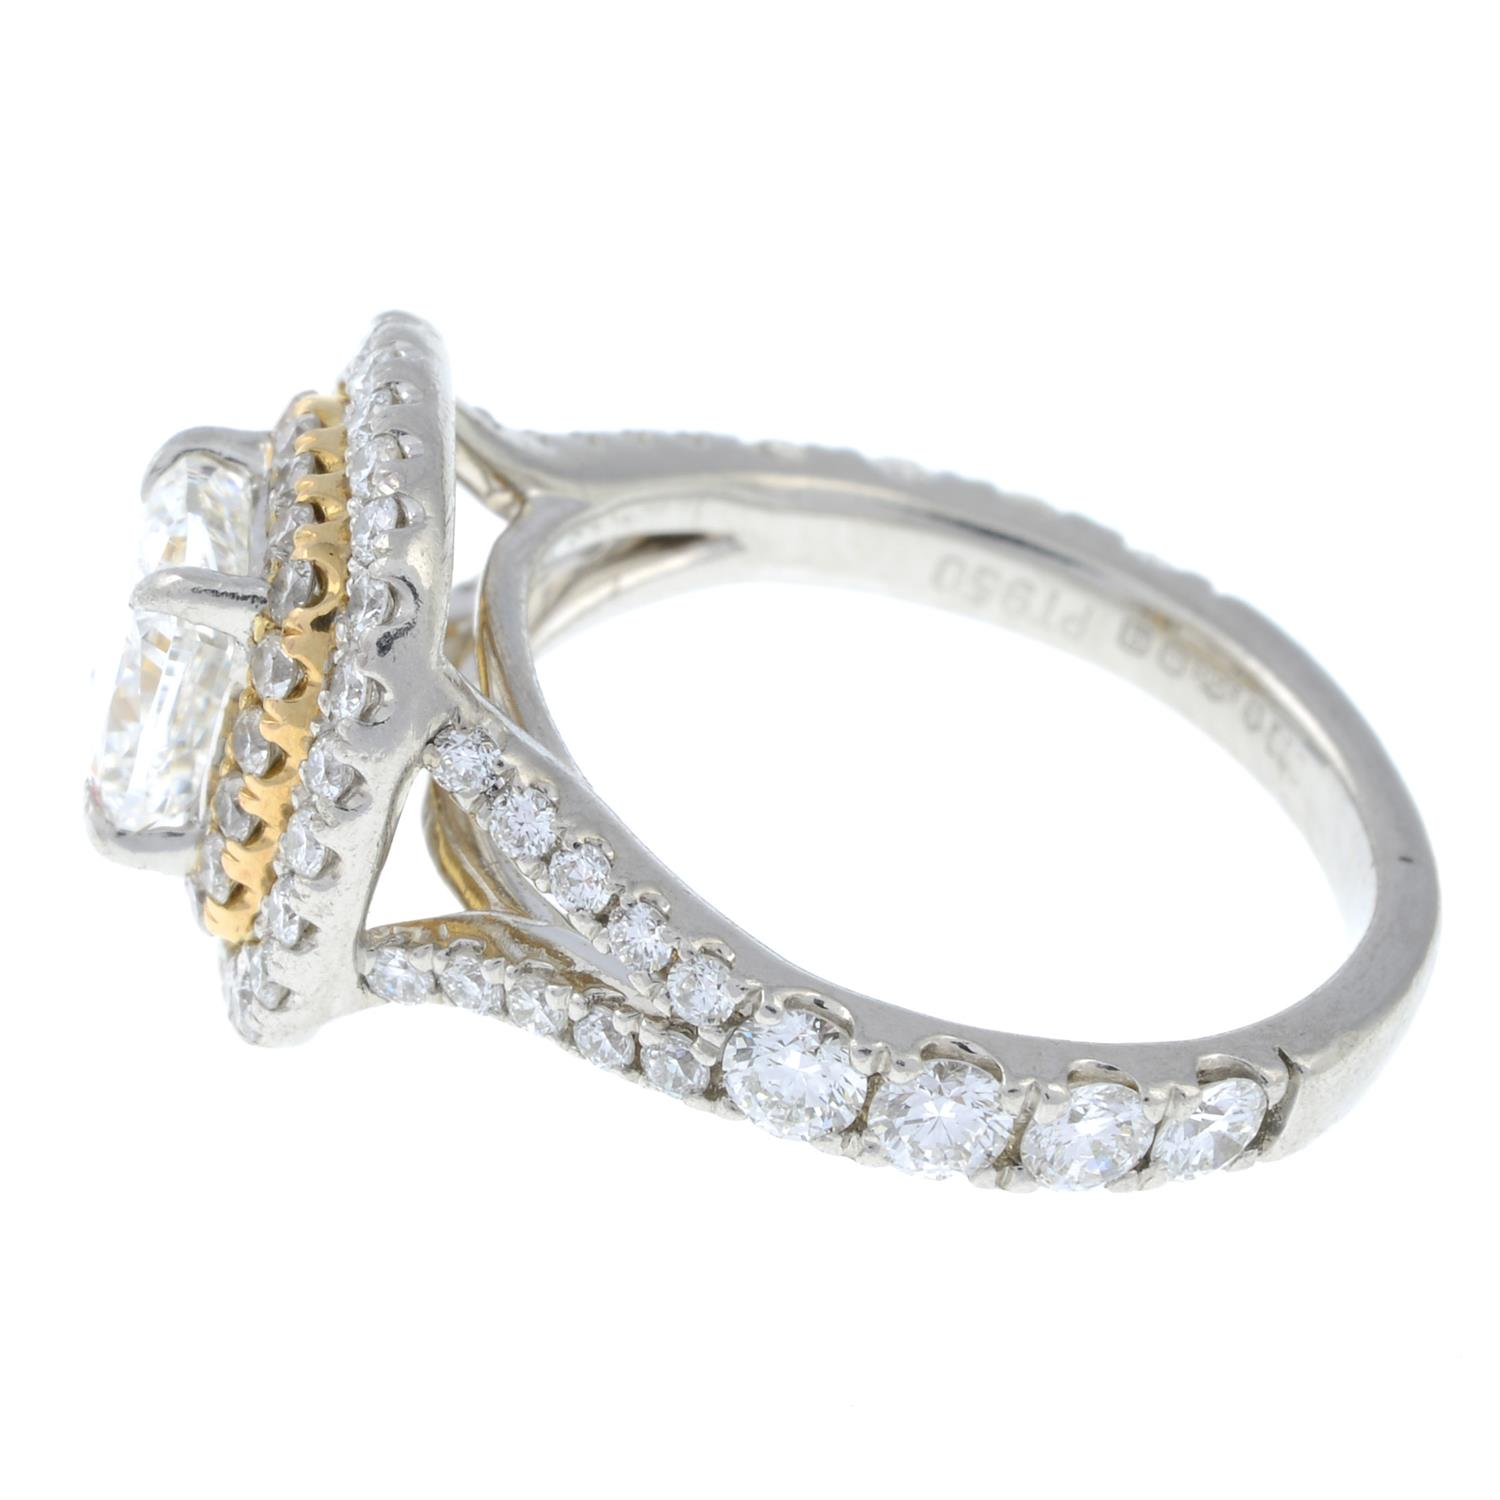 A platinum cushion-shape diamond ring, with brilliant-cut diamond surrounds and shoulders. - Image 3 of 7